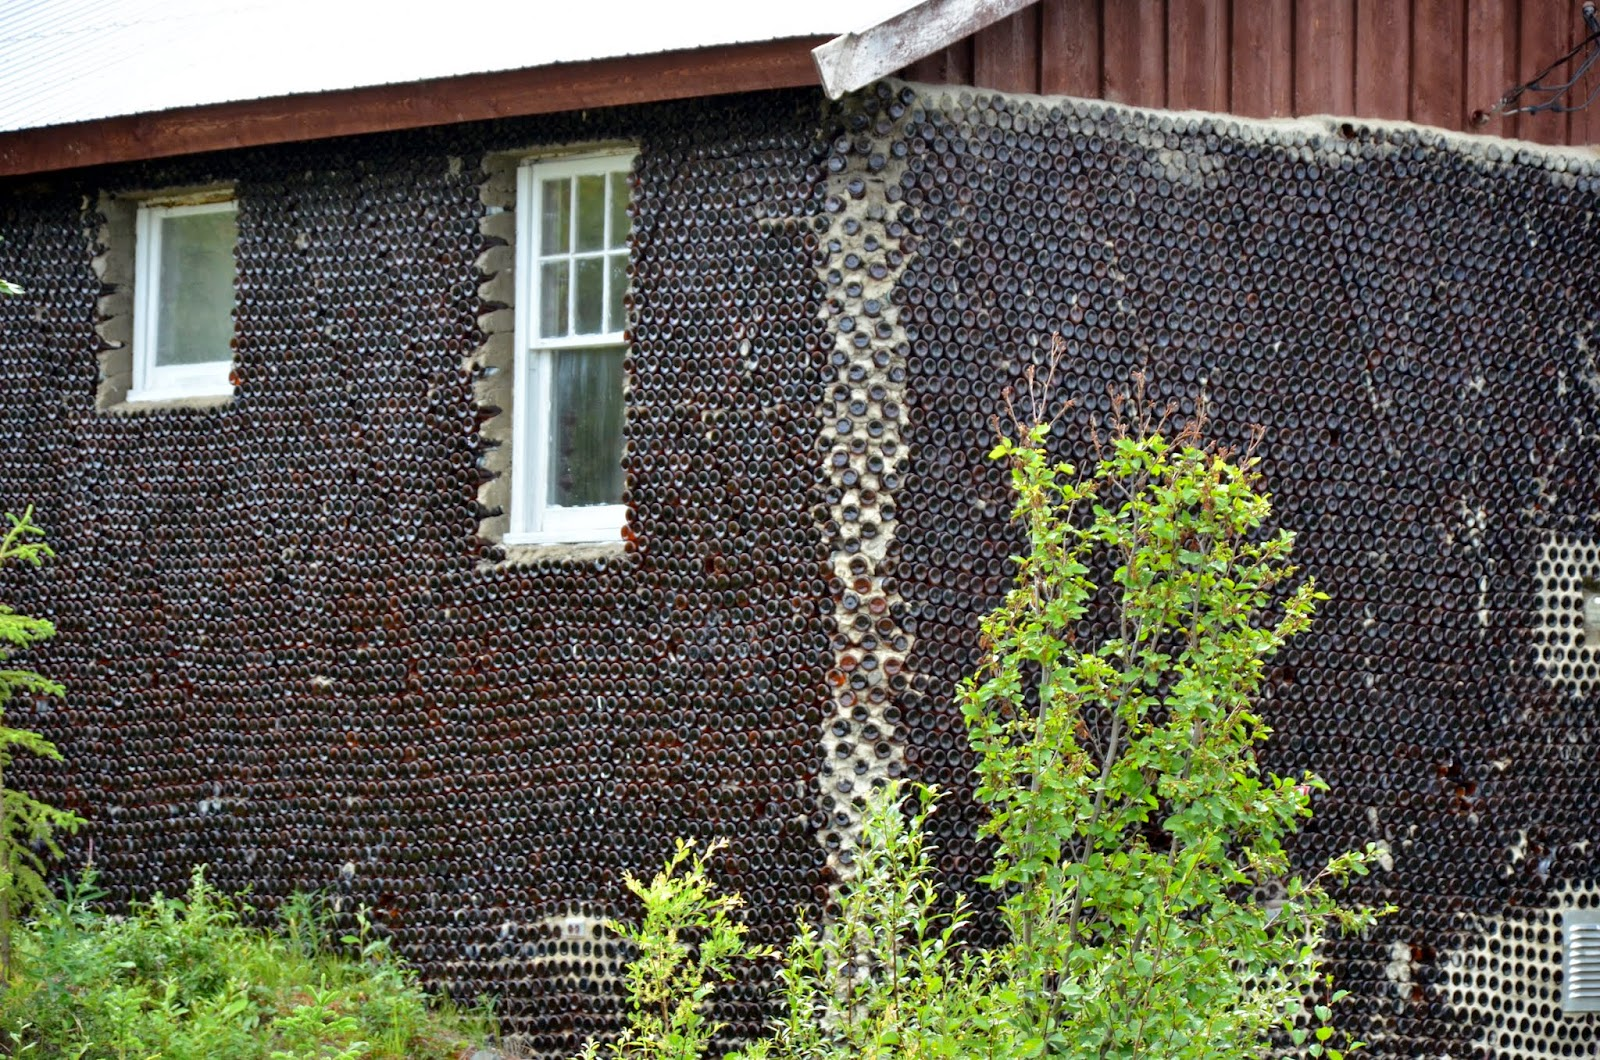 The glass house, made from glass bottles.